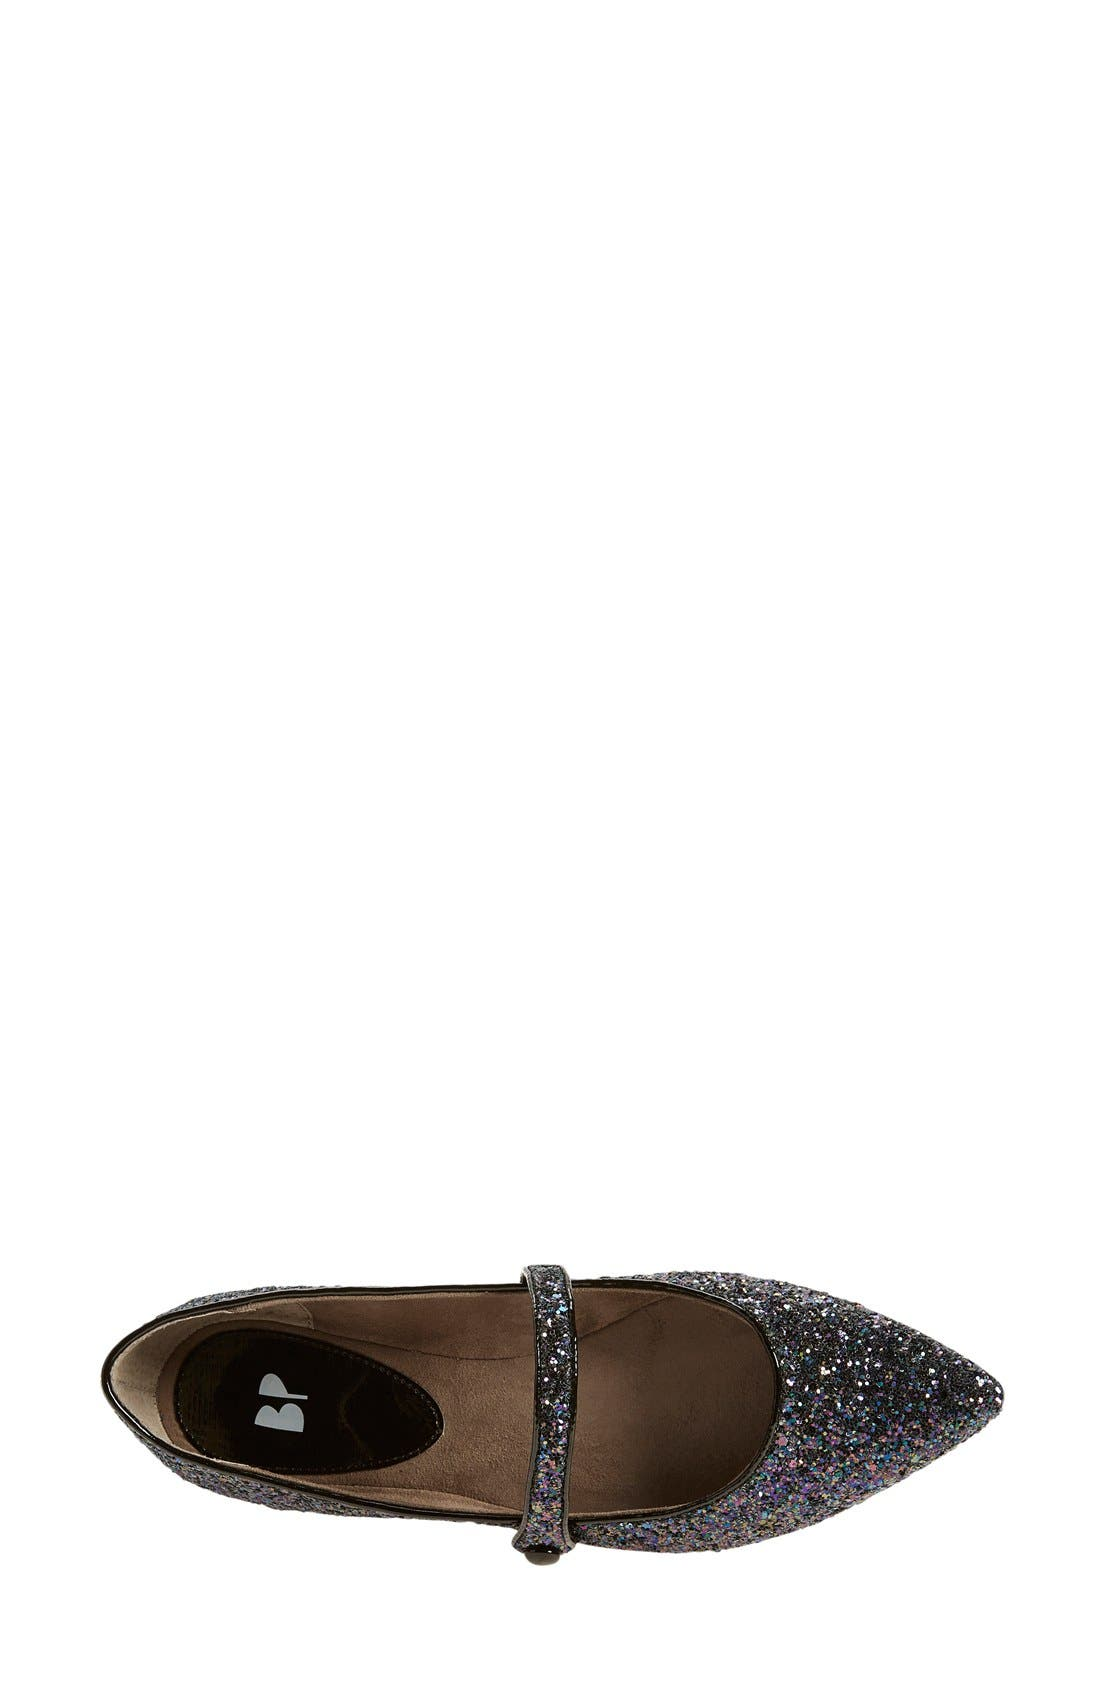 Alternate Image 3  - BP. 'Maribel' Mary Jane Glitter Flat (Women)